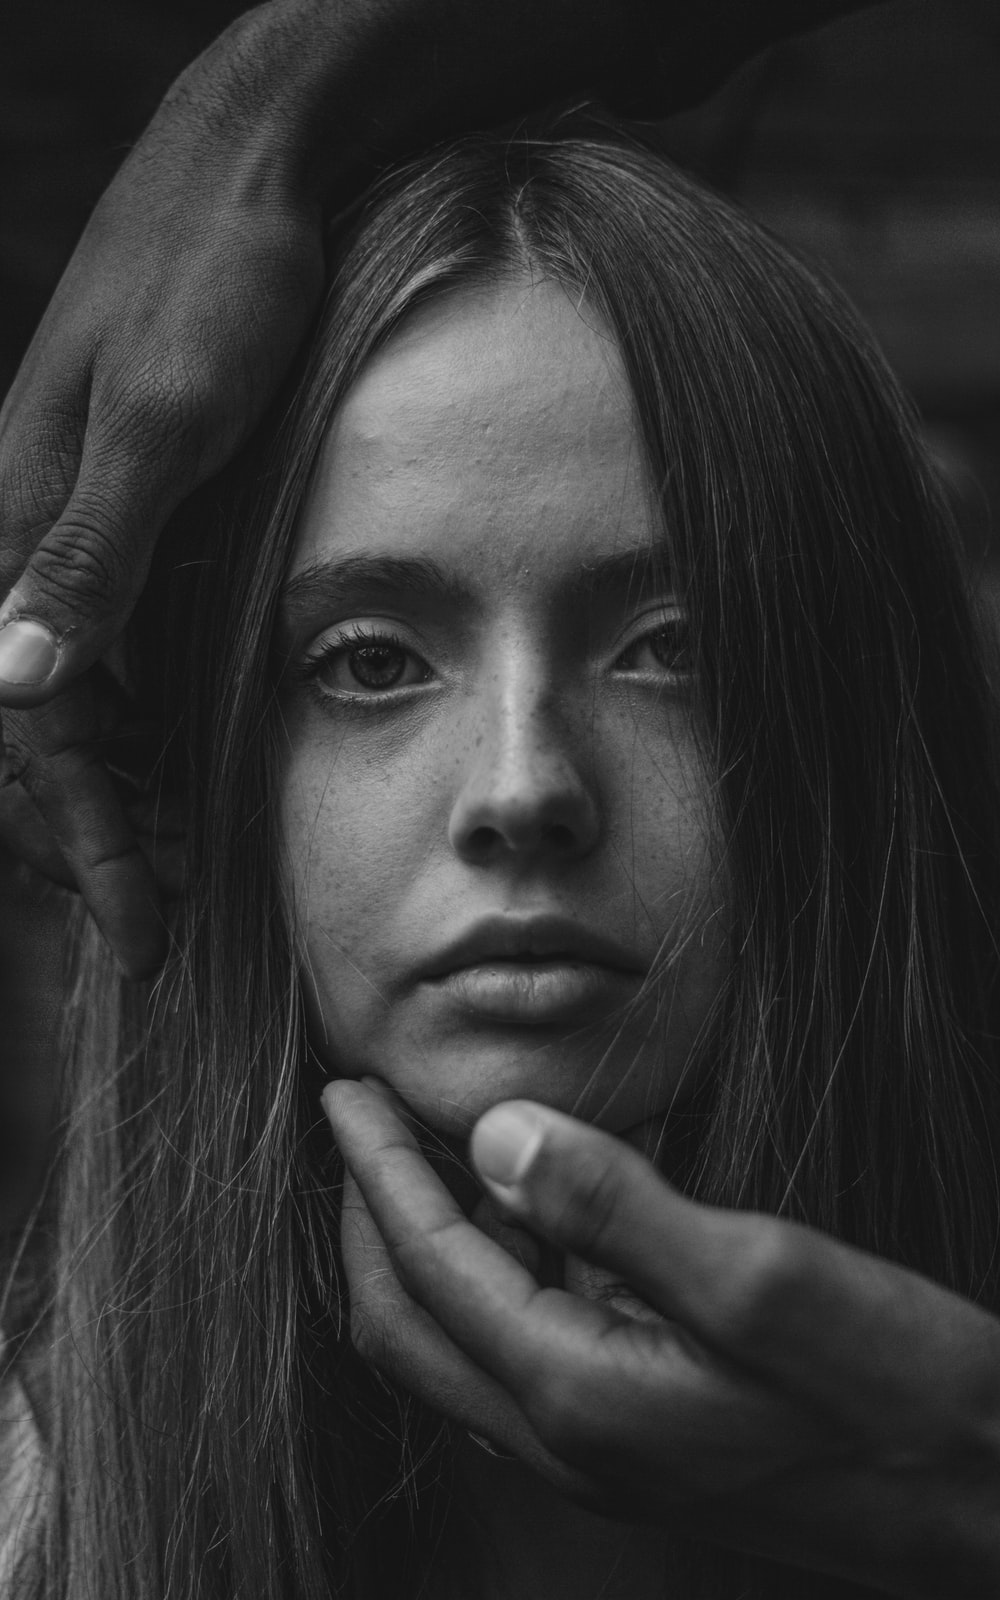 grayscale photo of woman with her hand on her face